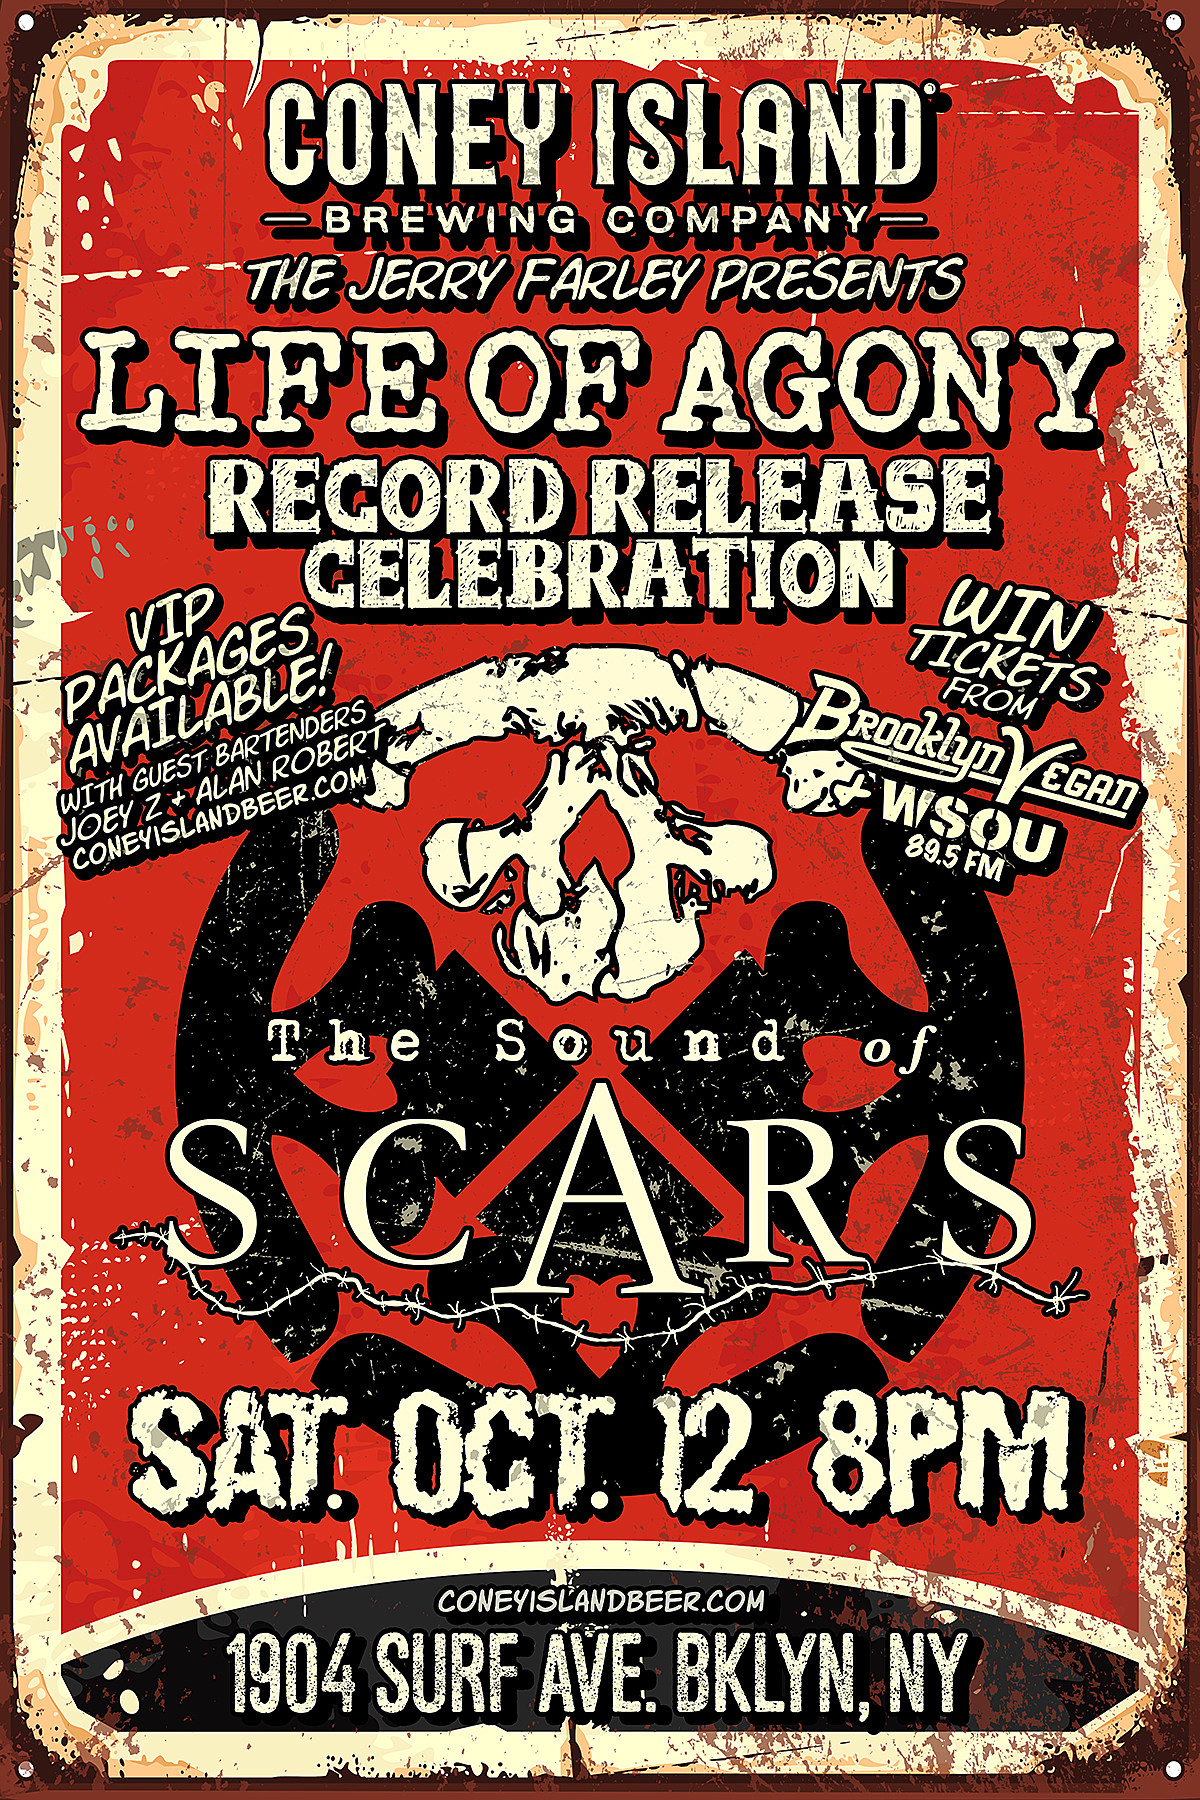 Life of Agony Record Release show